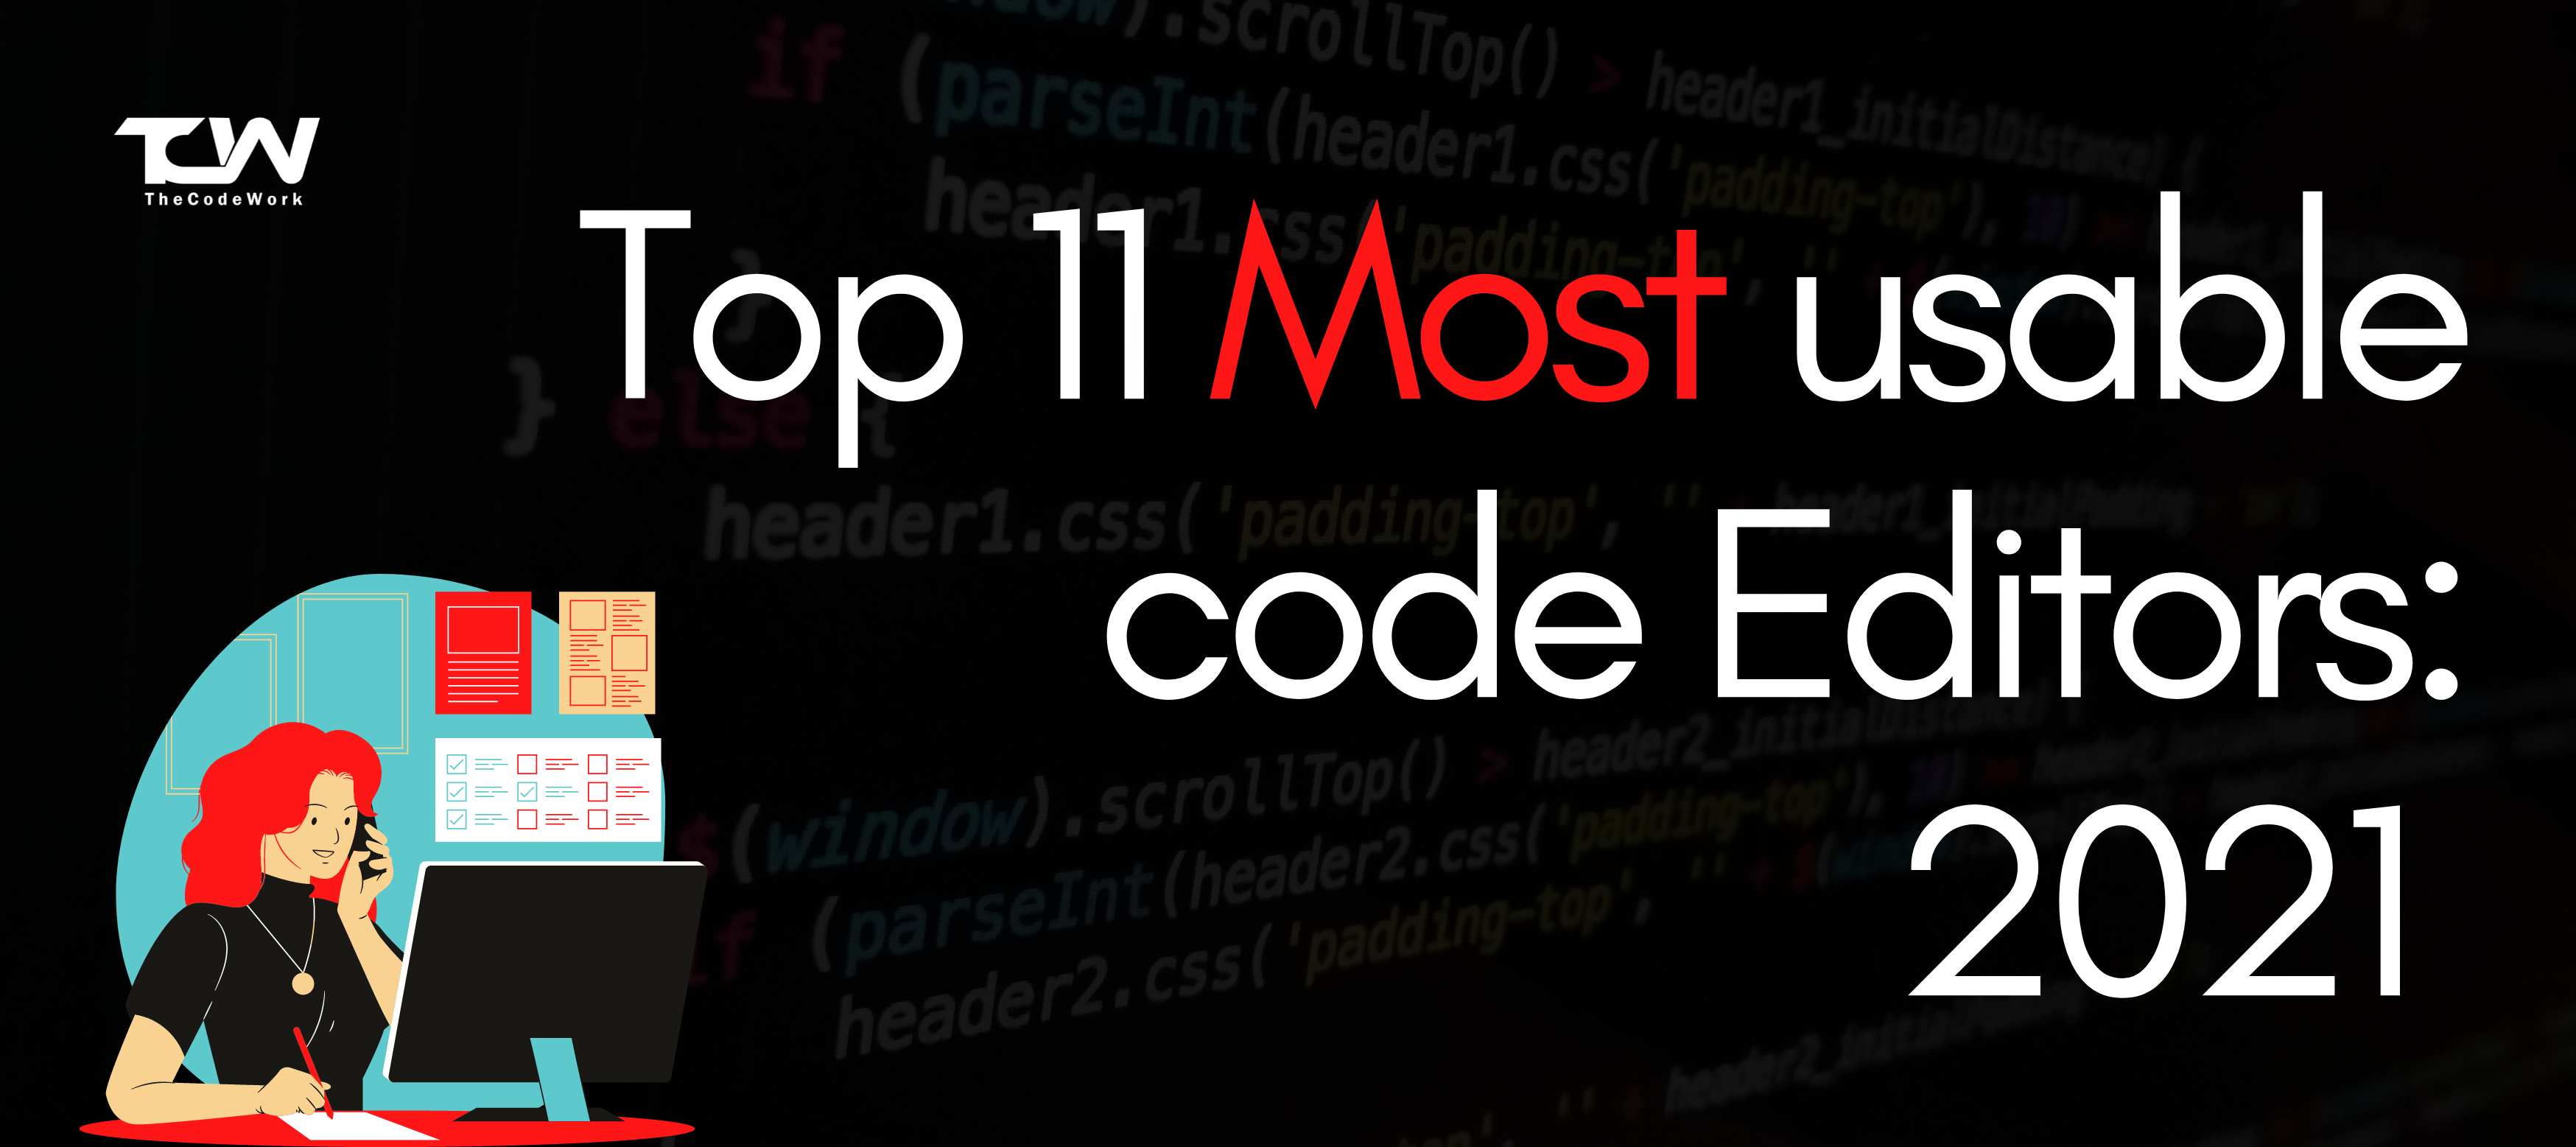 Top 11 Most Usable Code Editors 2021: Latest List